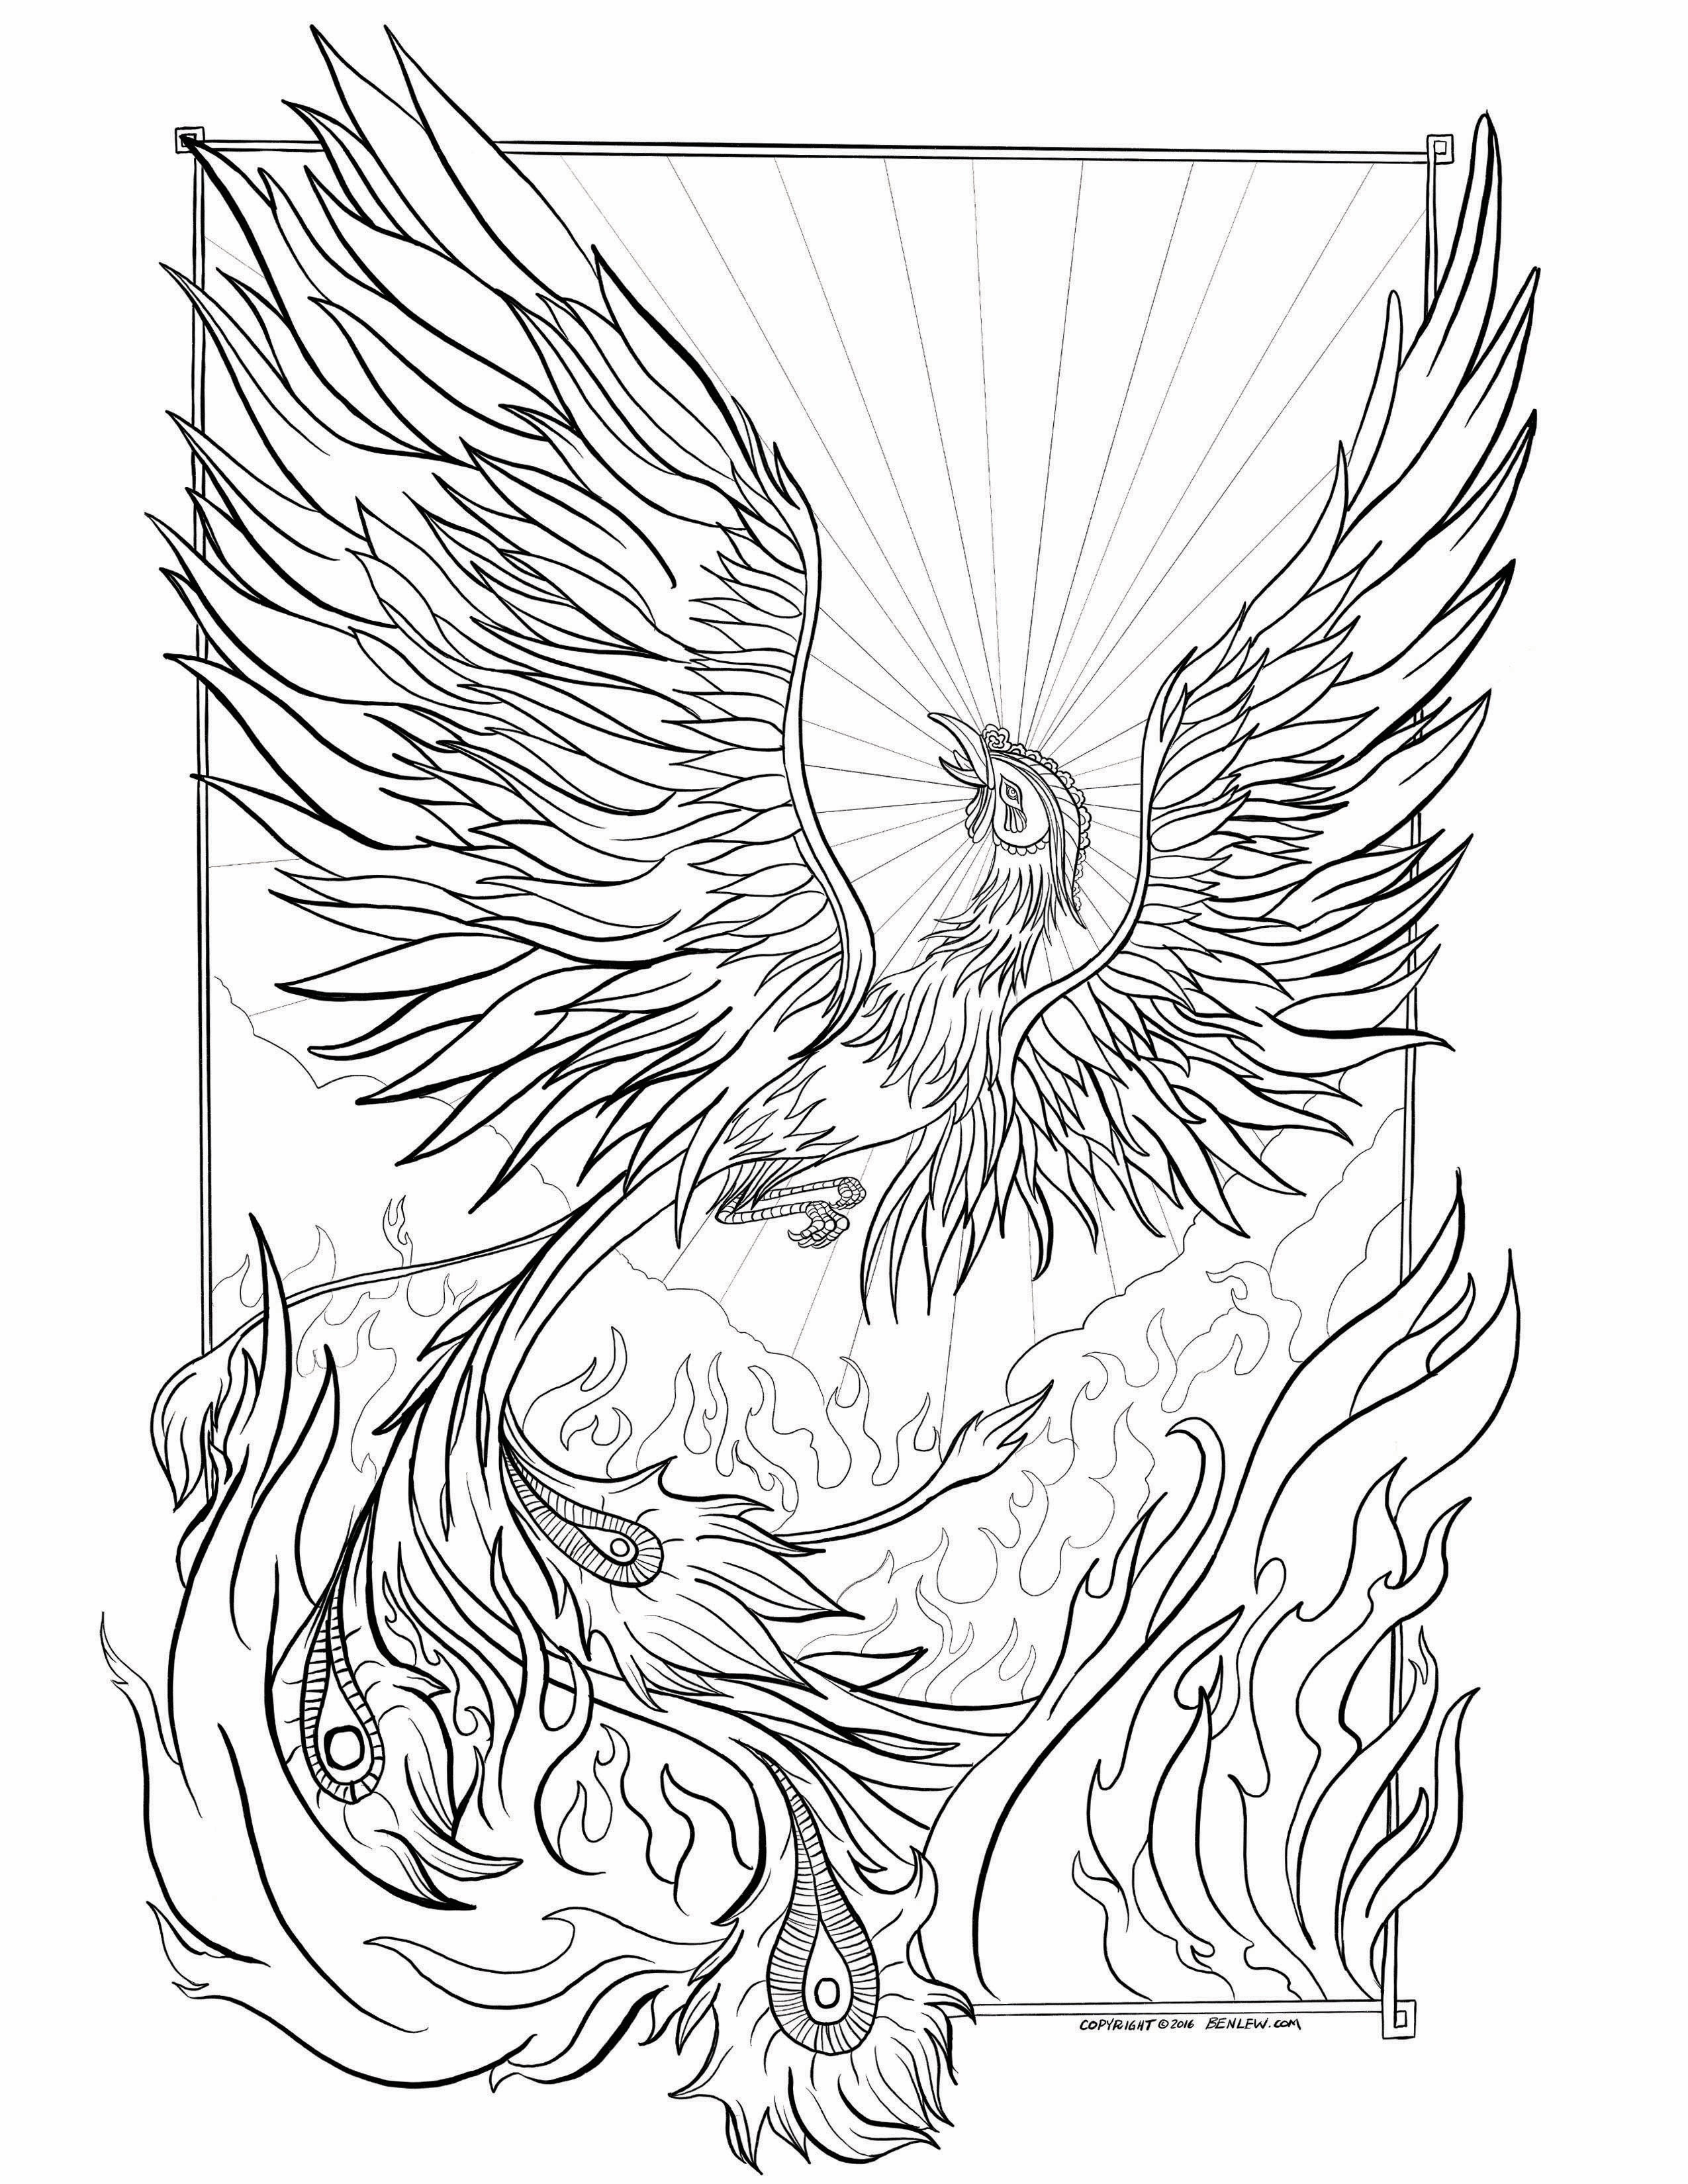 Love Bird Coloring Pages Coloring Ideas Stunning Phoenix Birding Page Pages To Print Save